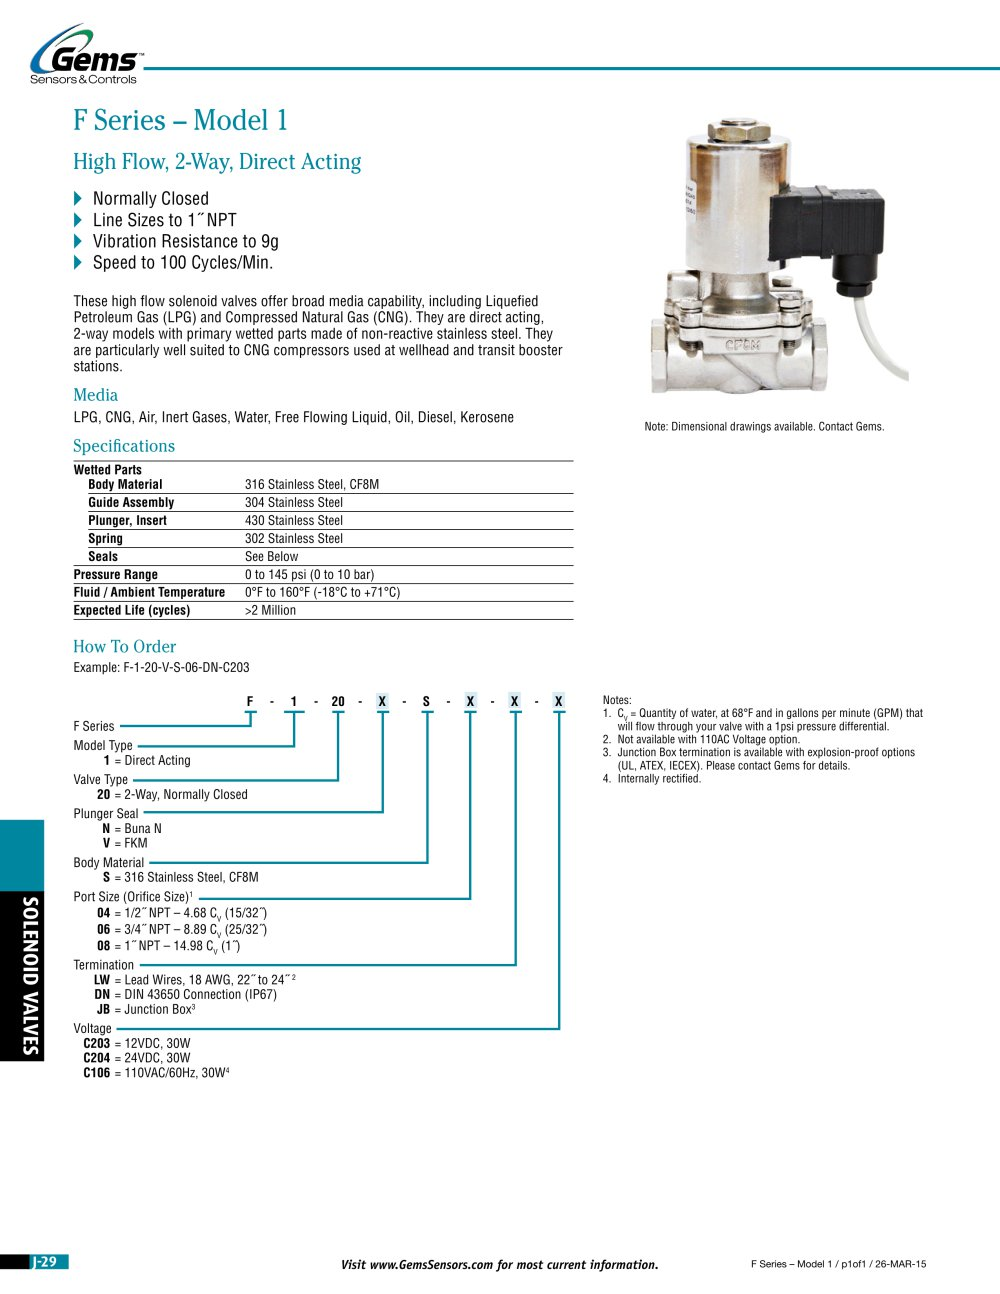 F Series | High Flow, High Pressure Direct Operating Solenoid Valve - 1 / 4  Pages